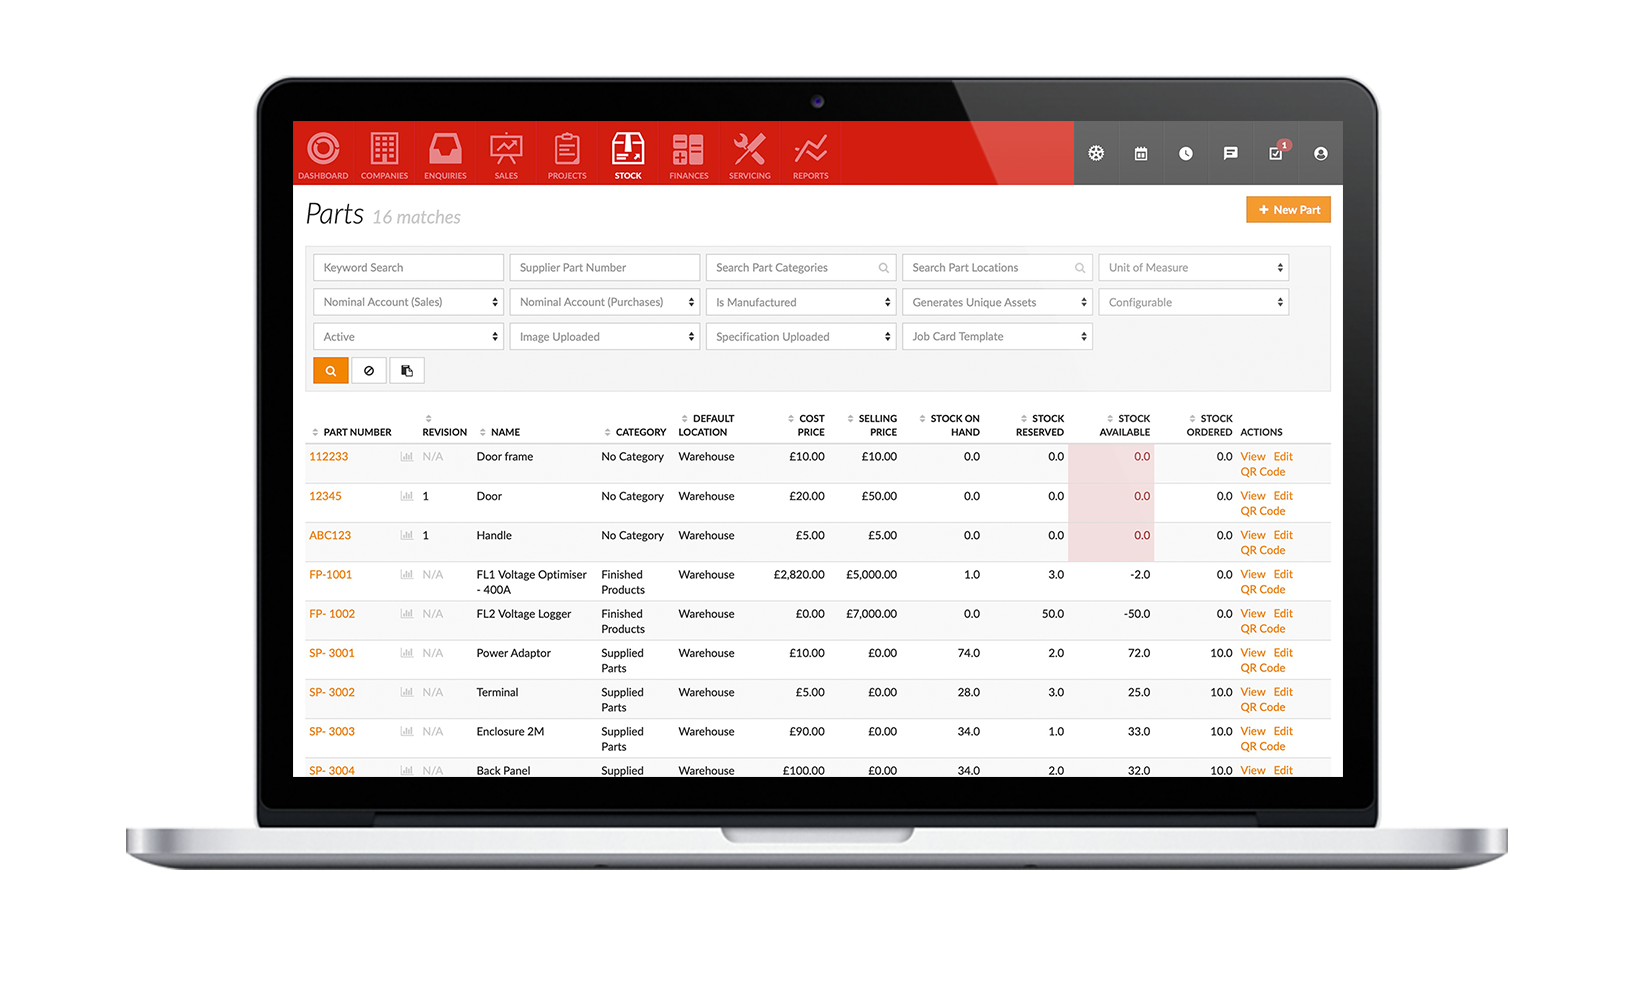 Parts & inventory management tool